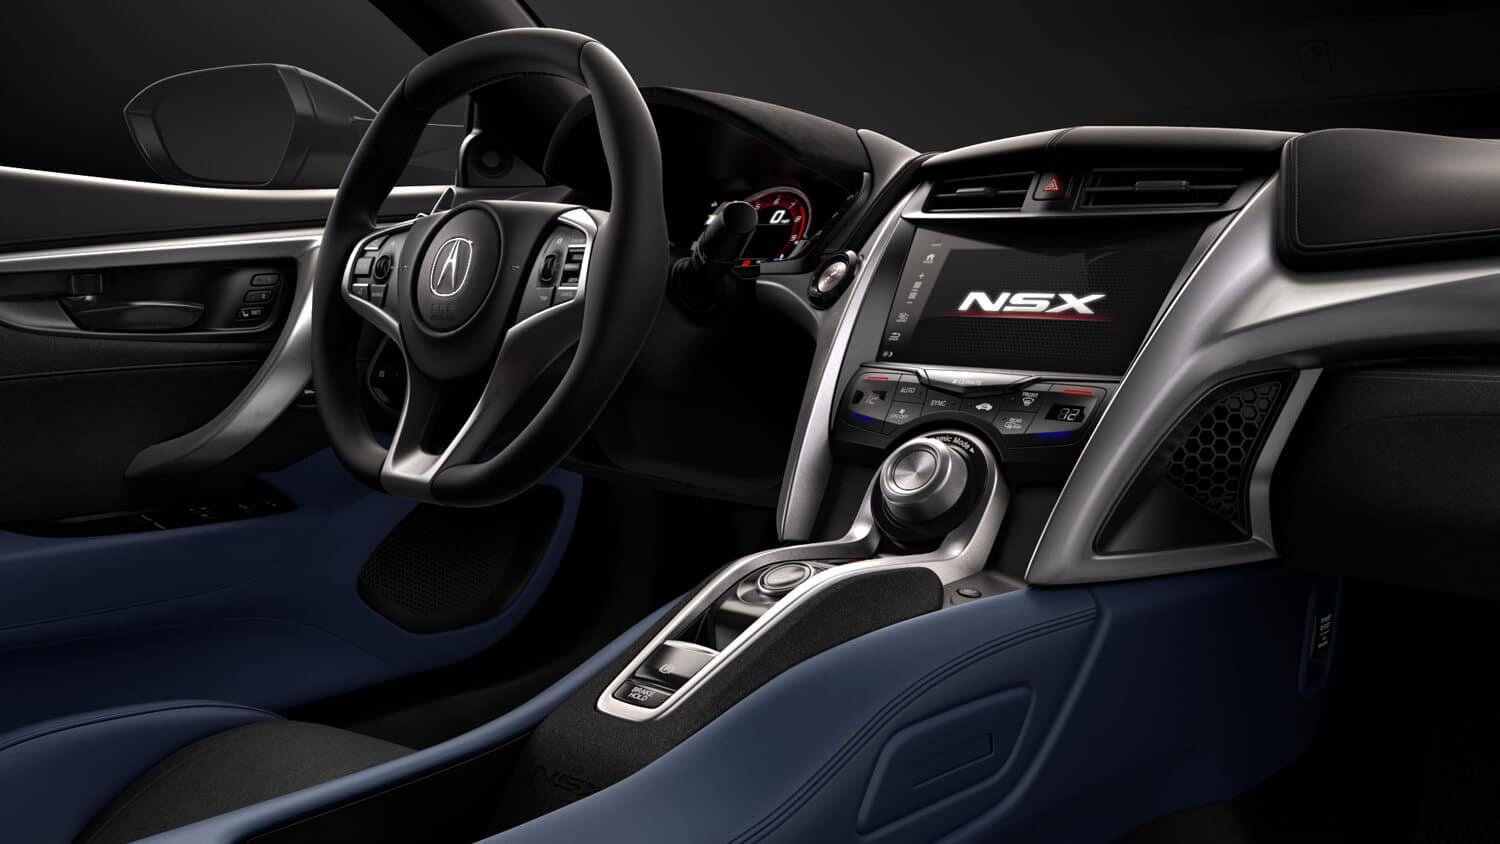 2021 Acura Nsx Interior Review Seating Infotainment Dashboard And Features Carindigo Com